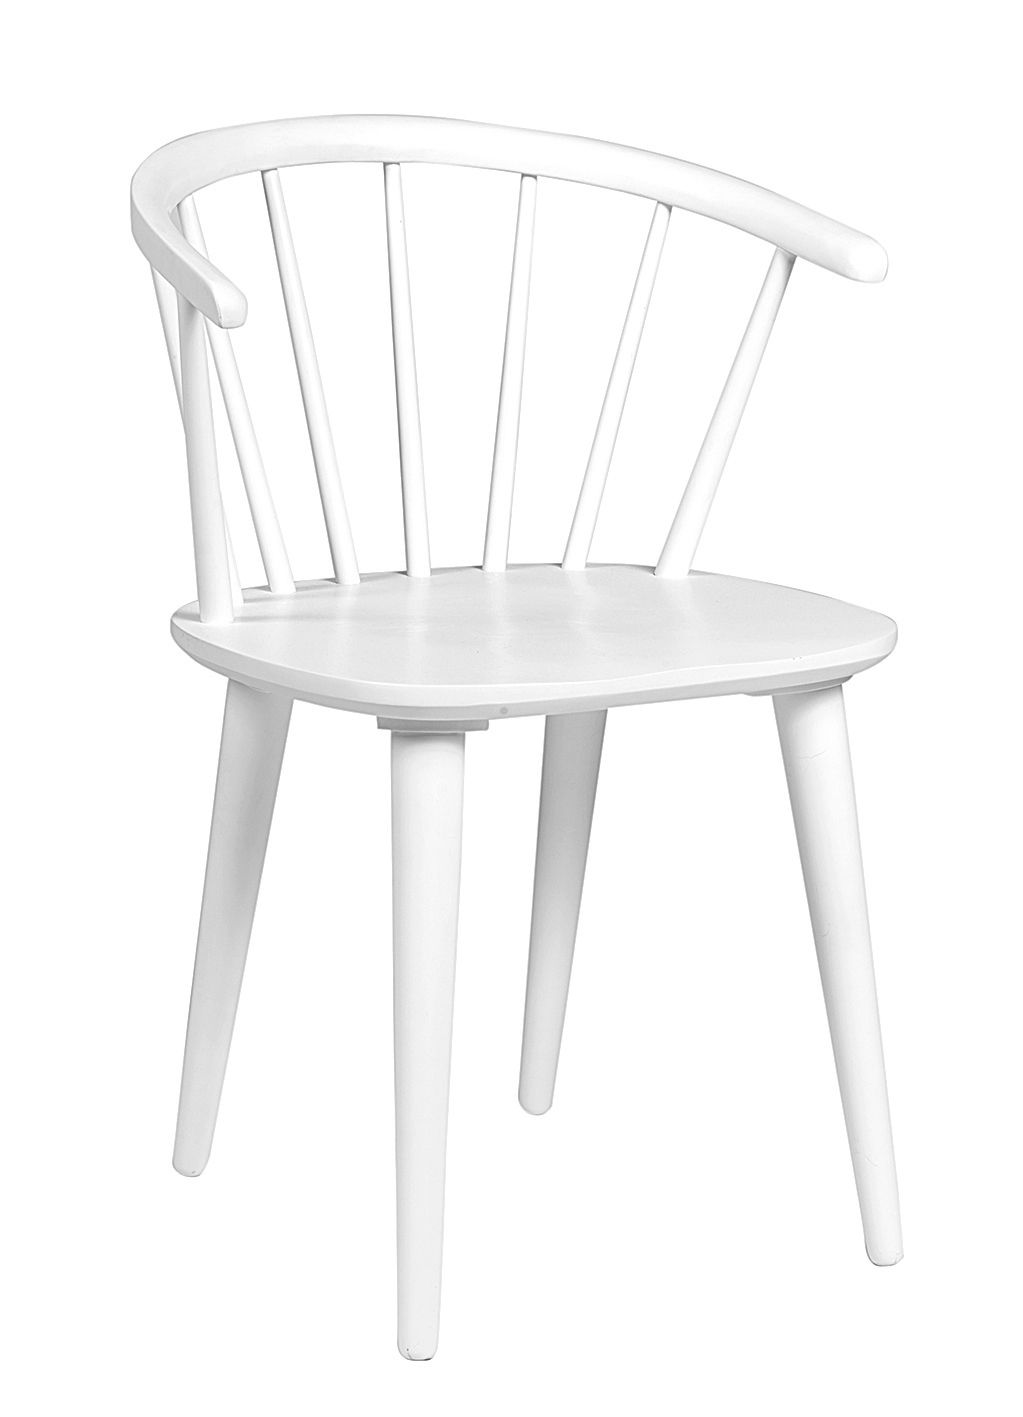 CARMEN CHAIR White Solid Rubberwood Chair